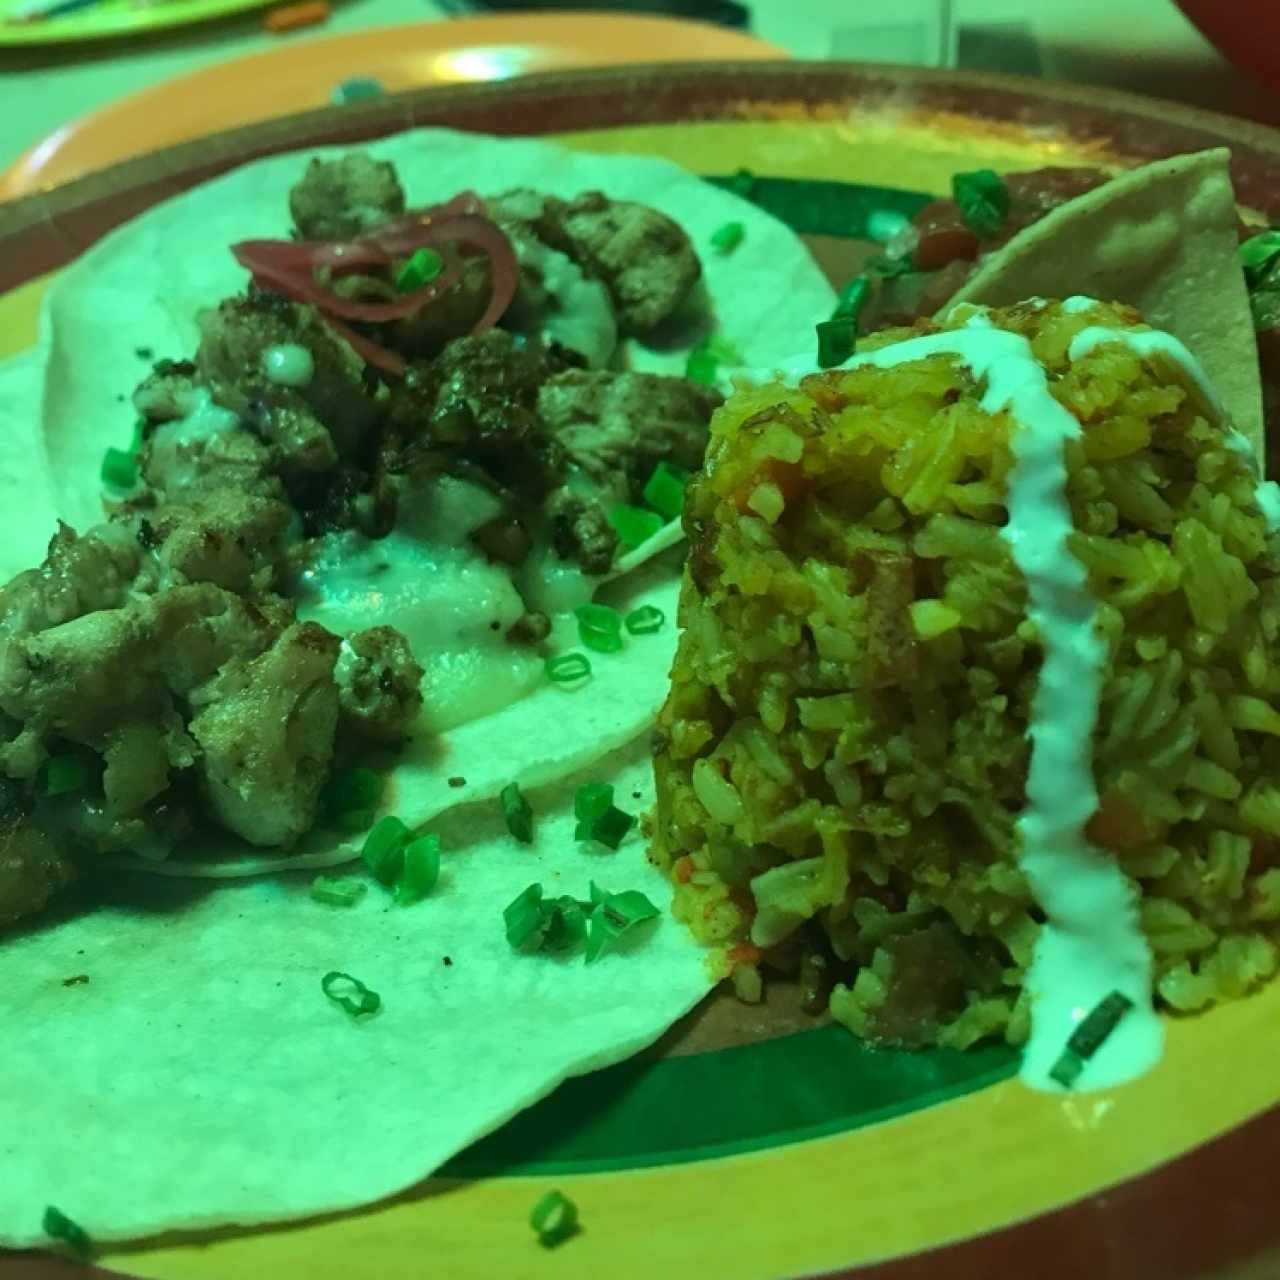 Tacos de pollo, arroz y pico de gallo